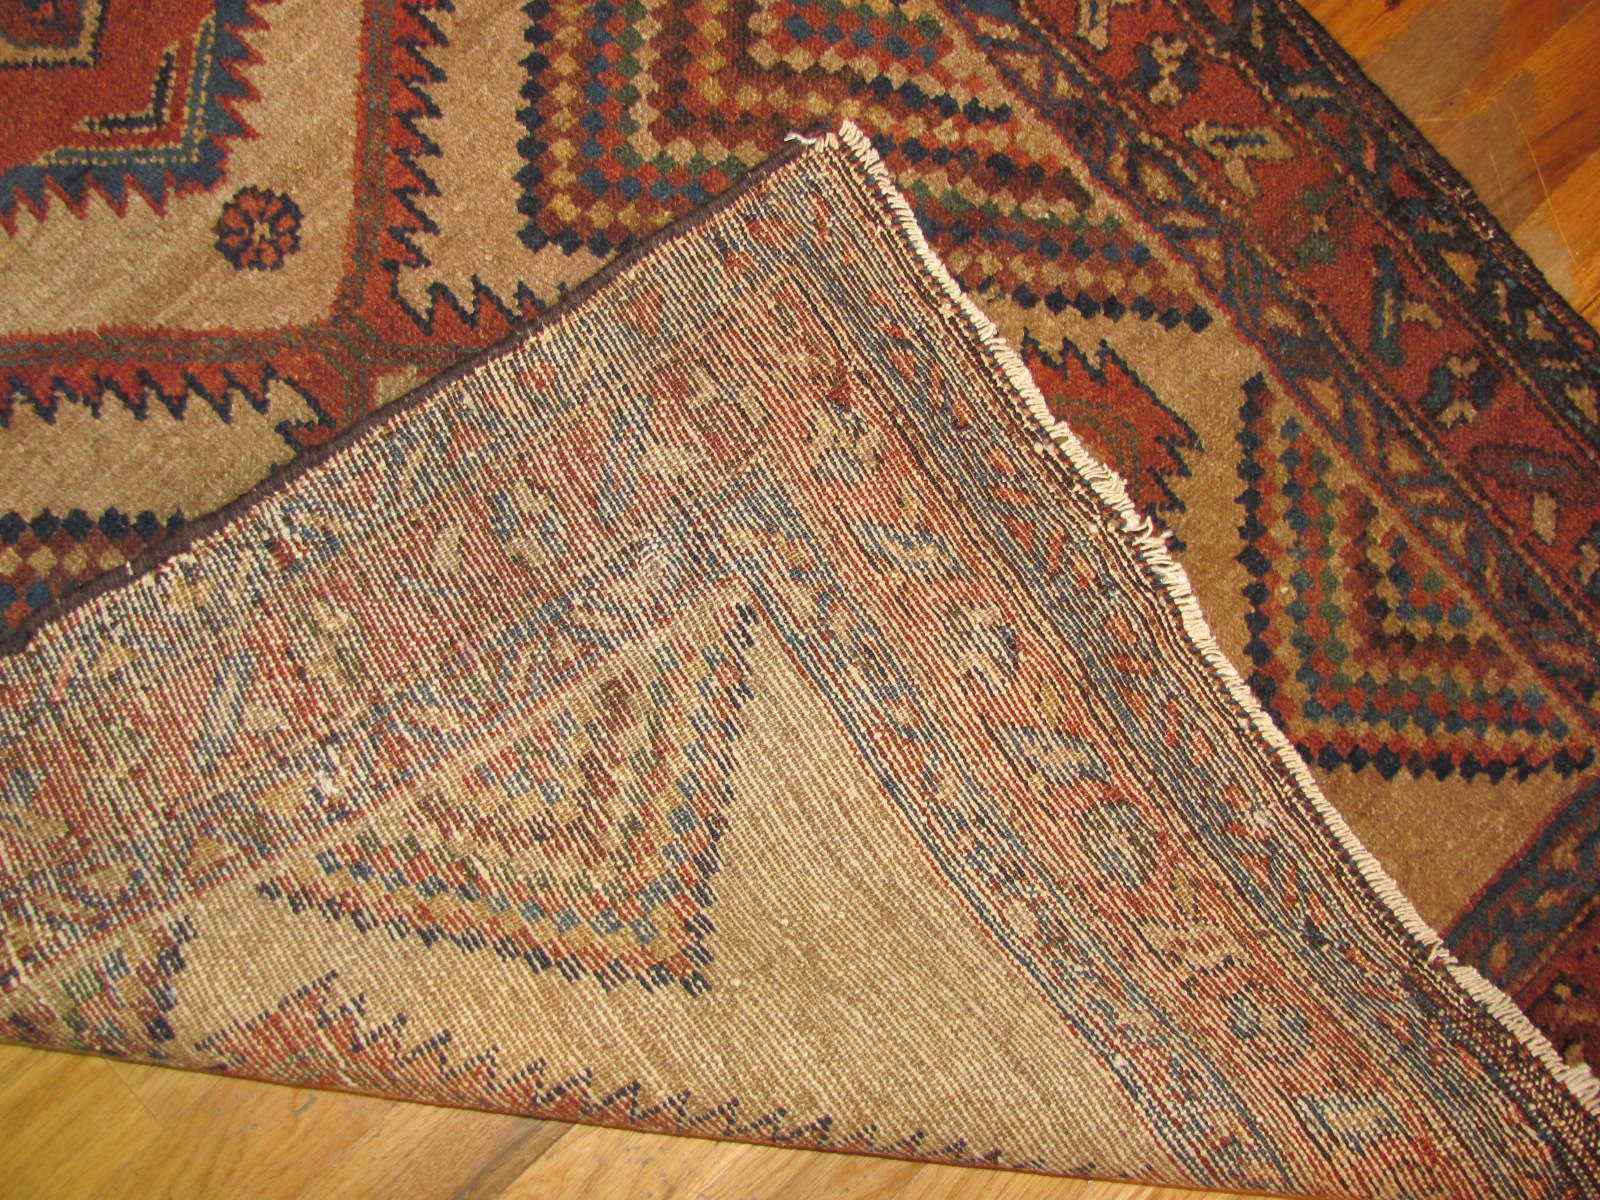 24633 antique persian hamadan rug 3 x 5,1 -2